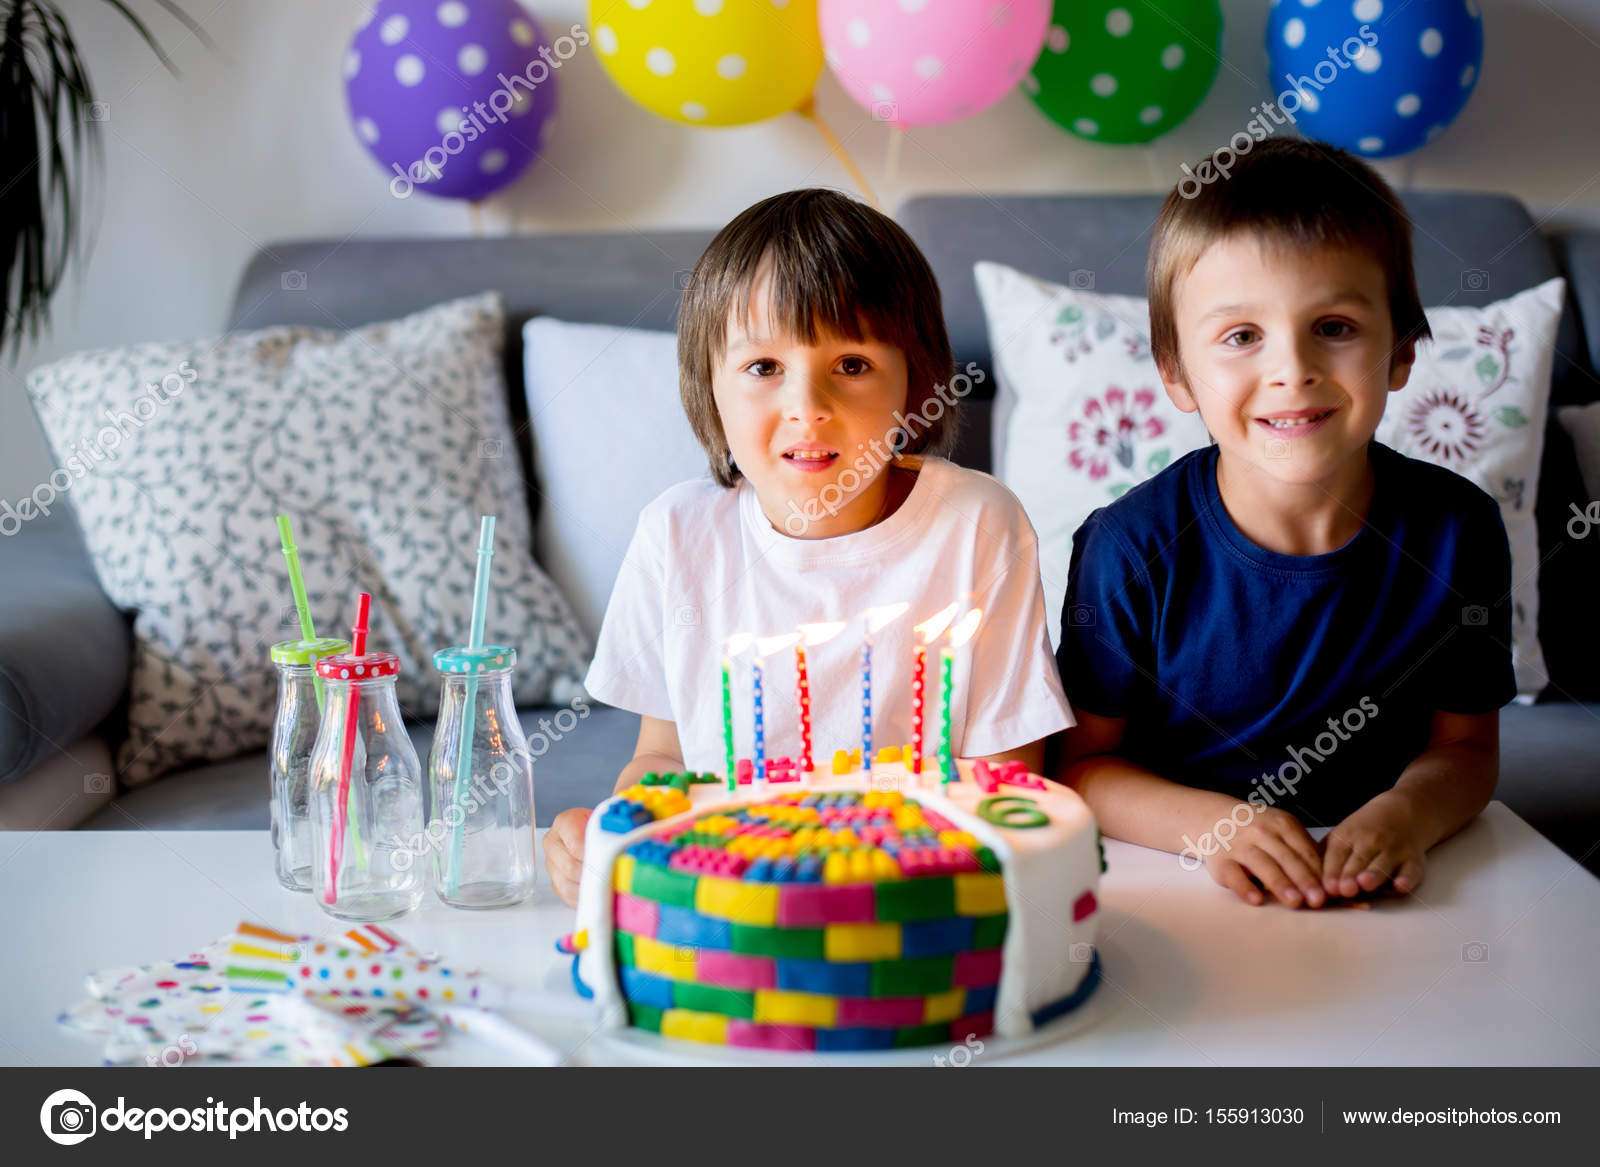 Sweet Little Child And His Brother Celebrating Sixth Birthday Cake Balloons Candles Cookies Childhood Happiness Concept Photo By